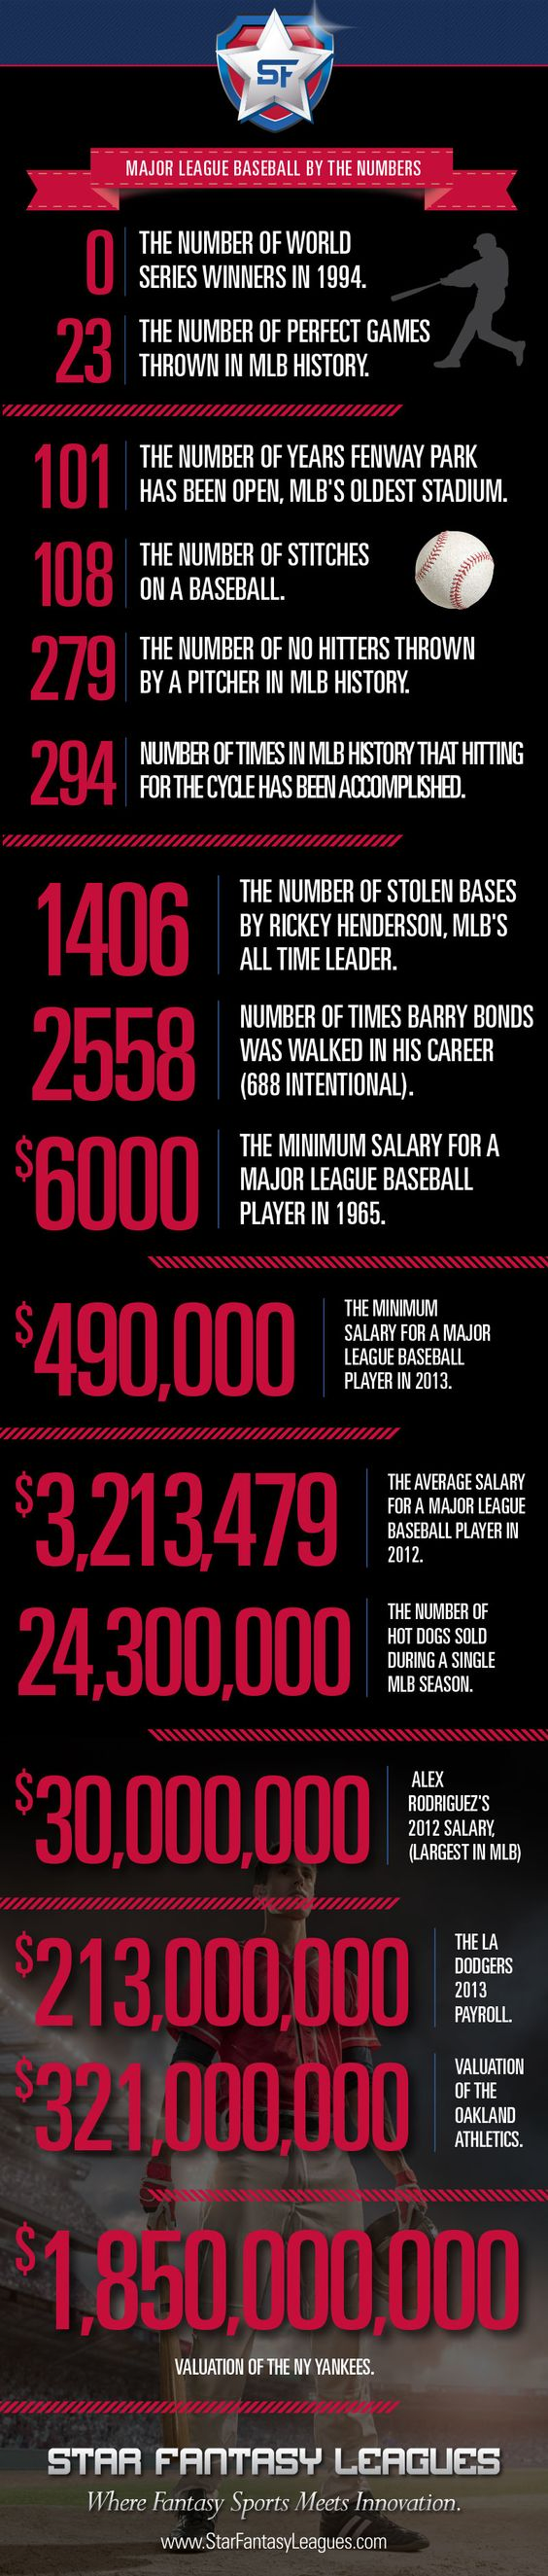 baseball numbers infographic